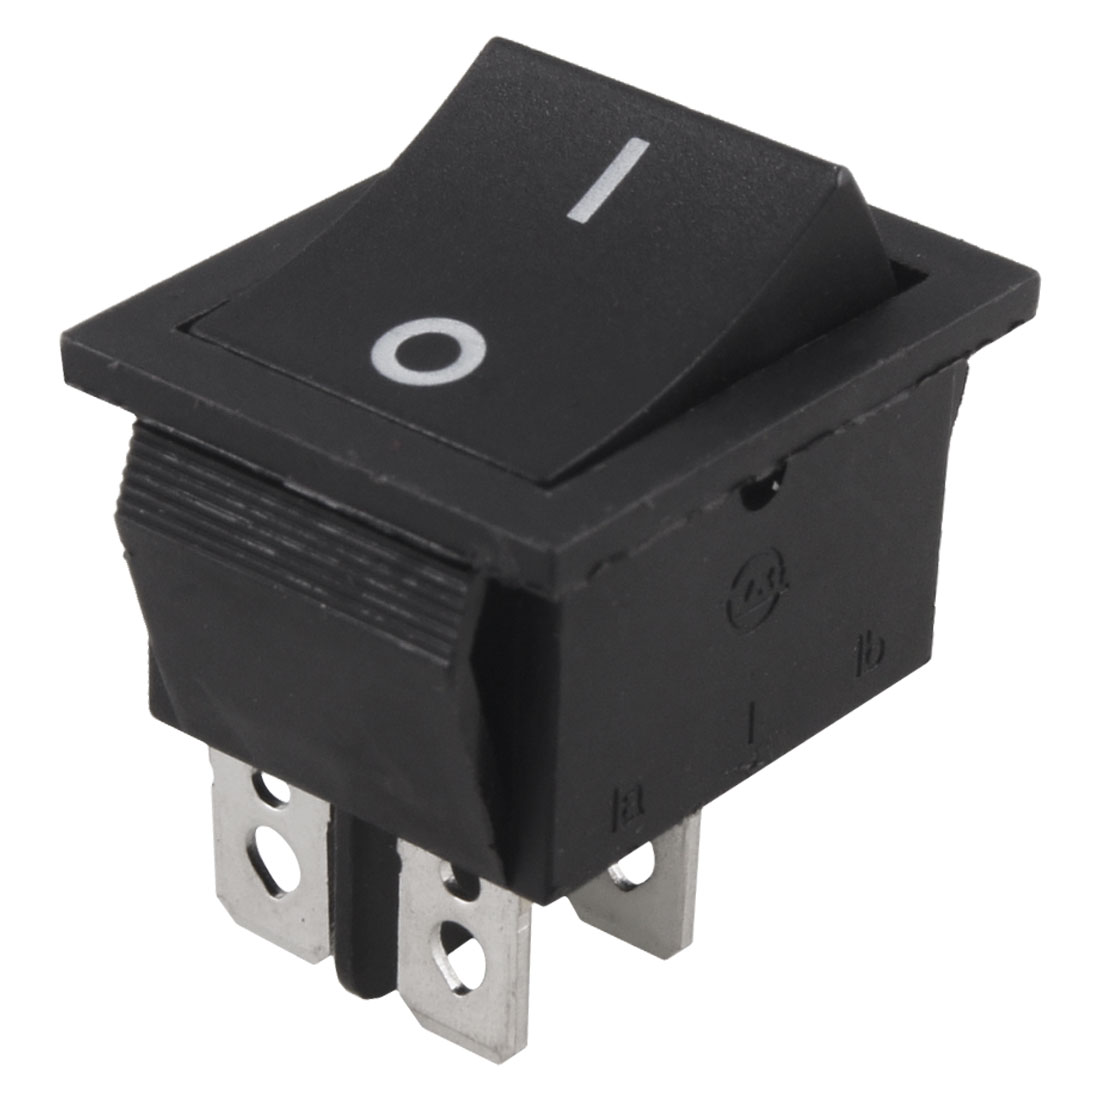 AC 250V 15A 4 Pin ON-OFF I/O 2 Position DPST Snap in Boat Rocker Switch Black